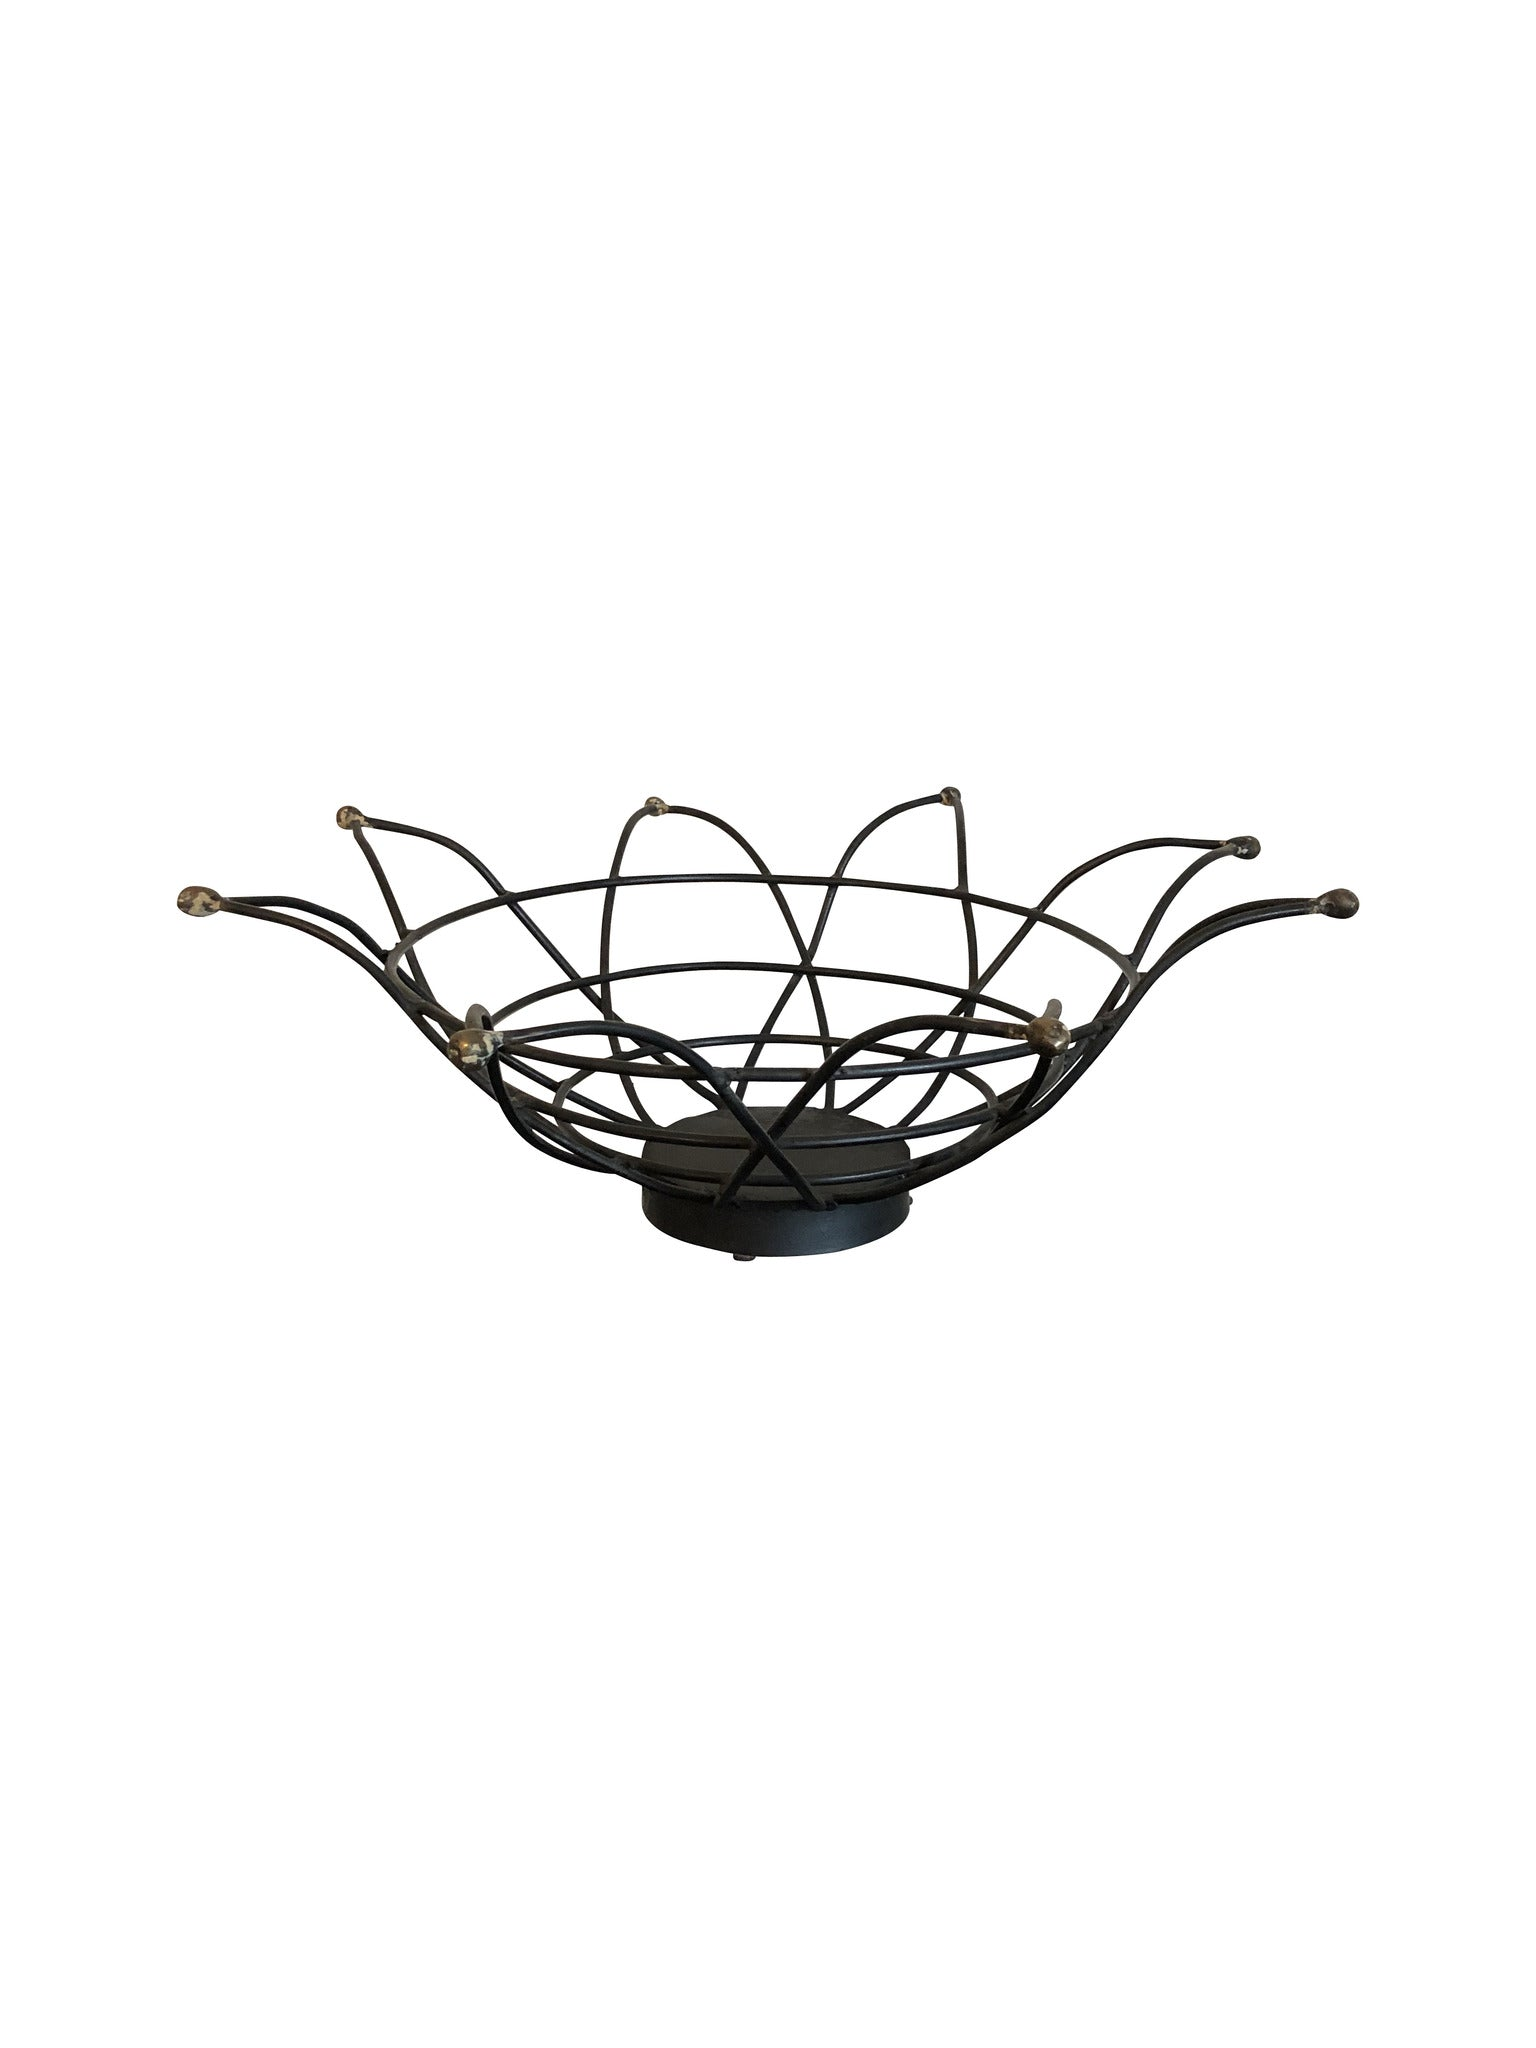 Wrought Iron Star Shaped Basket